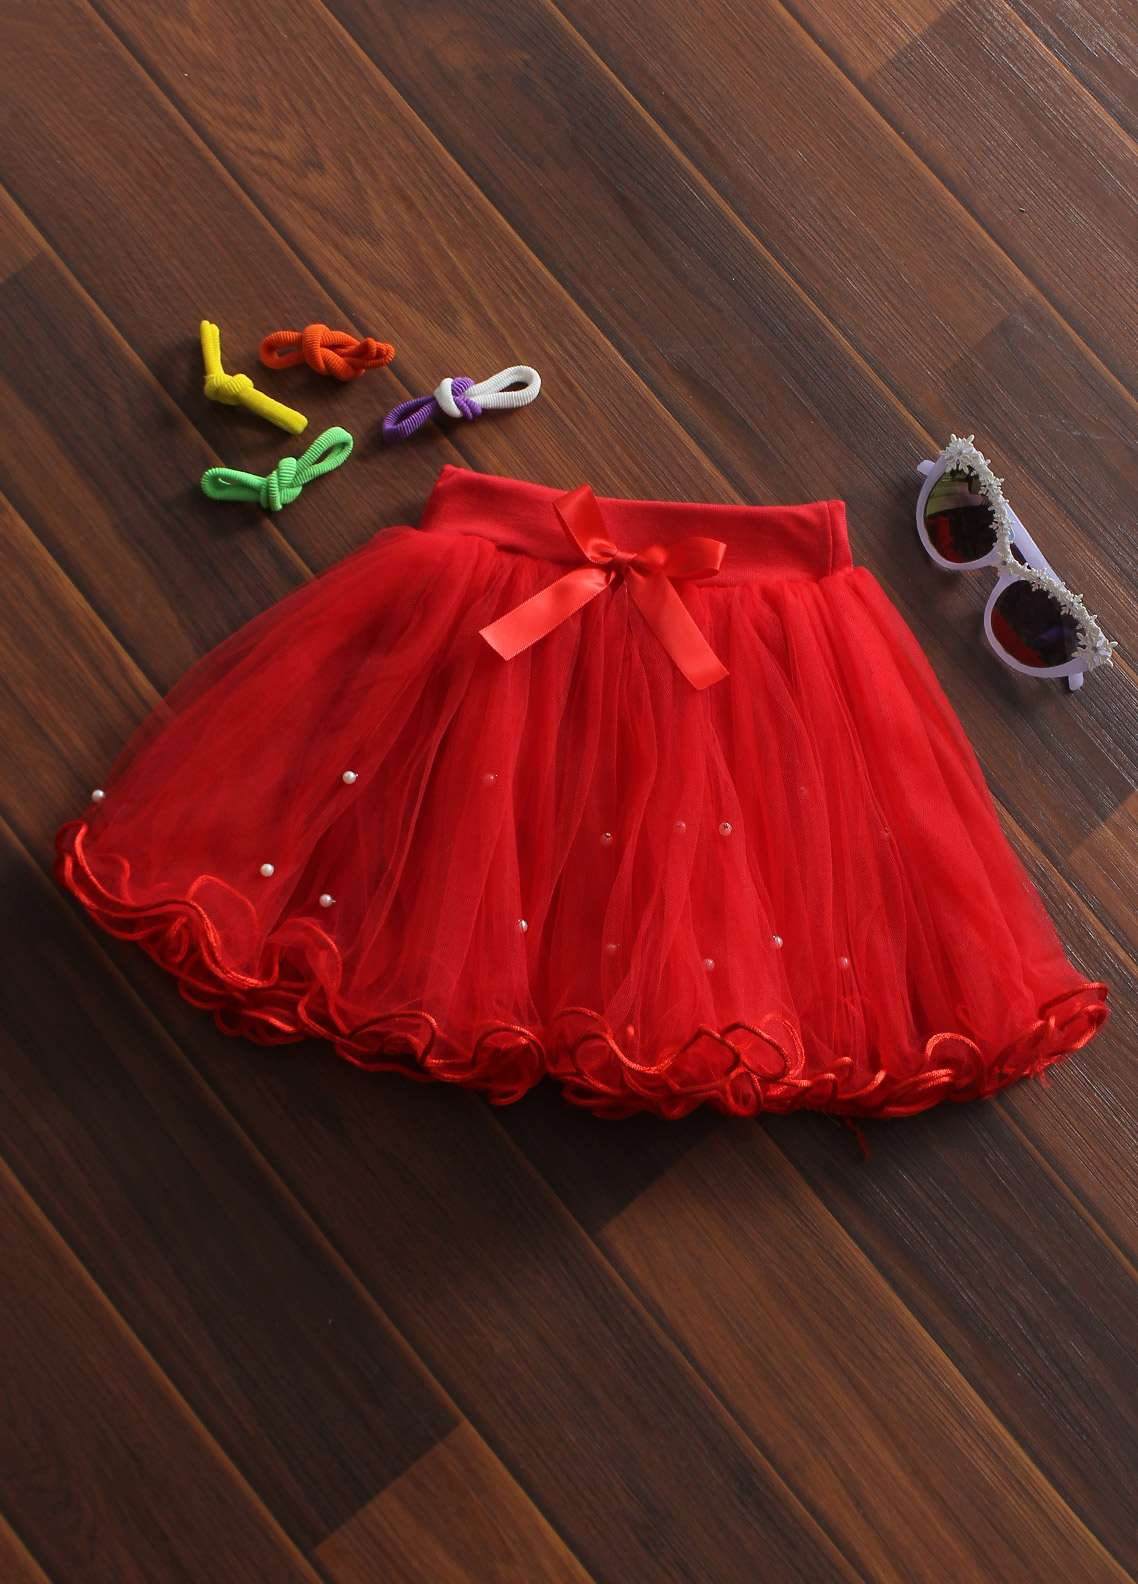 Sanaulla Exclusive Range Cotton Net Fancy Skirts for Girls -  8715 Red